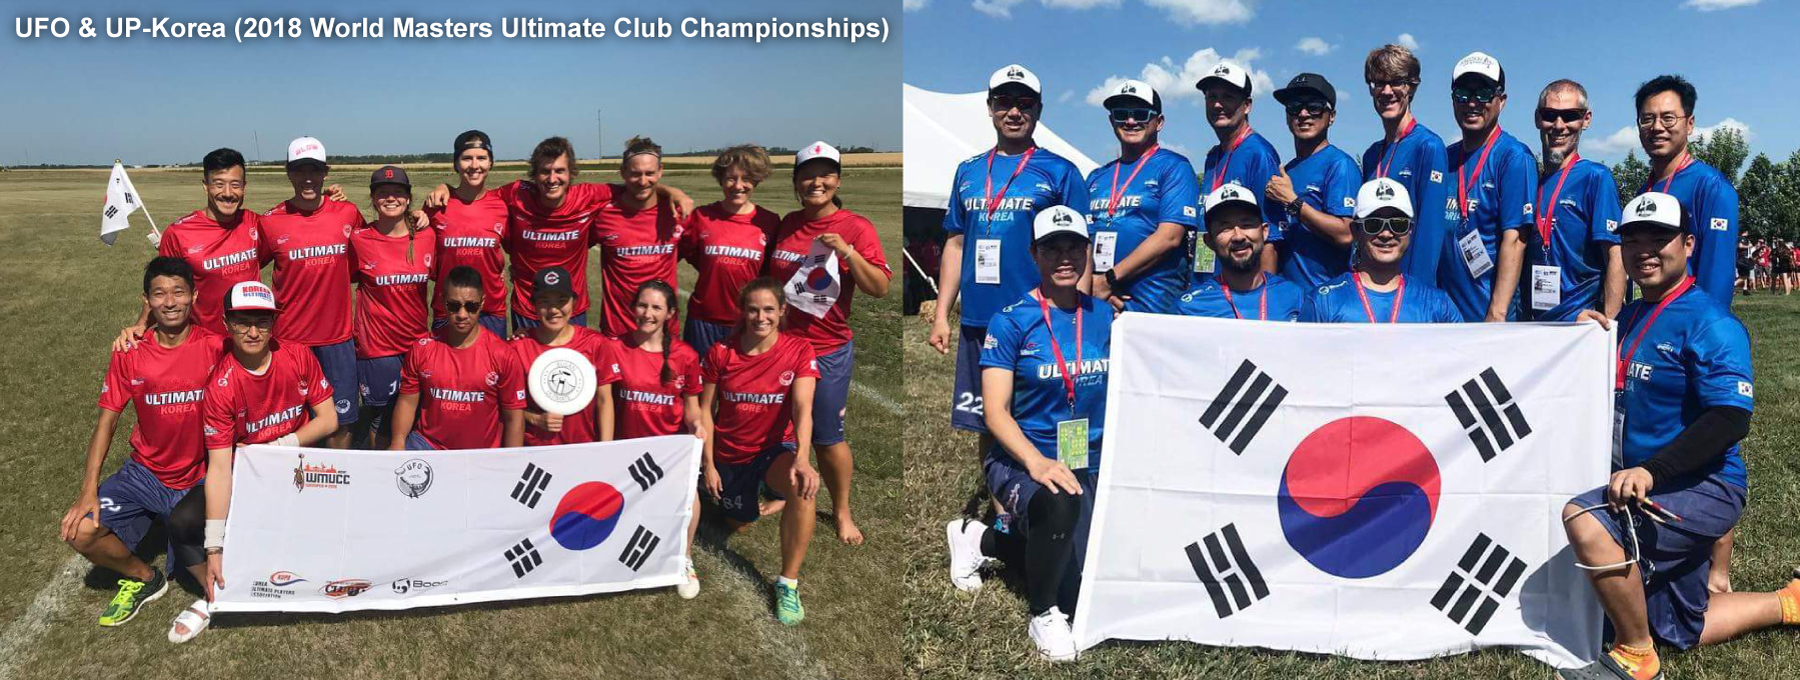 UFO & UP-Korea (2018 World Ultimate Masters Ultimate Club Championships)